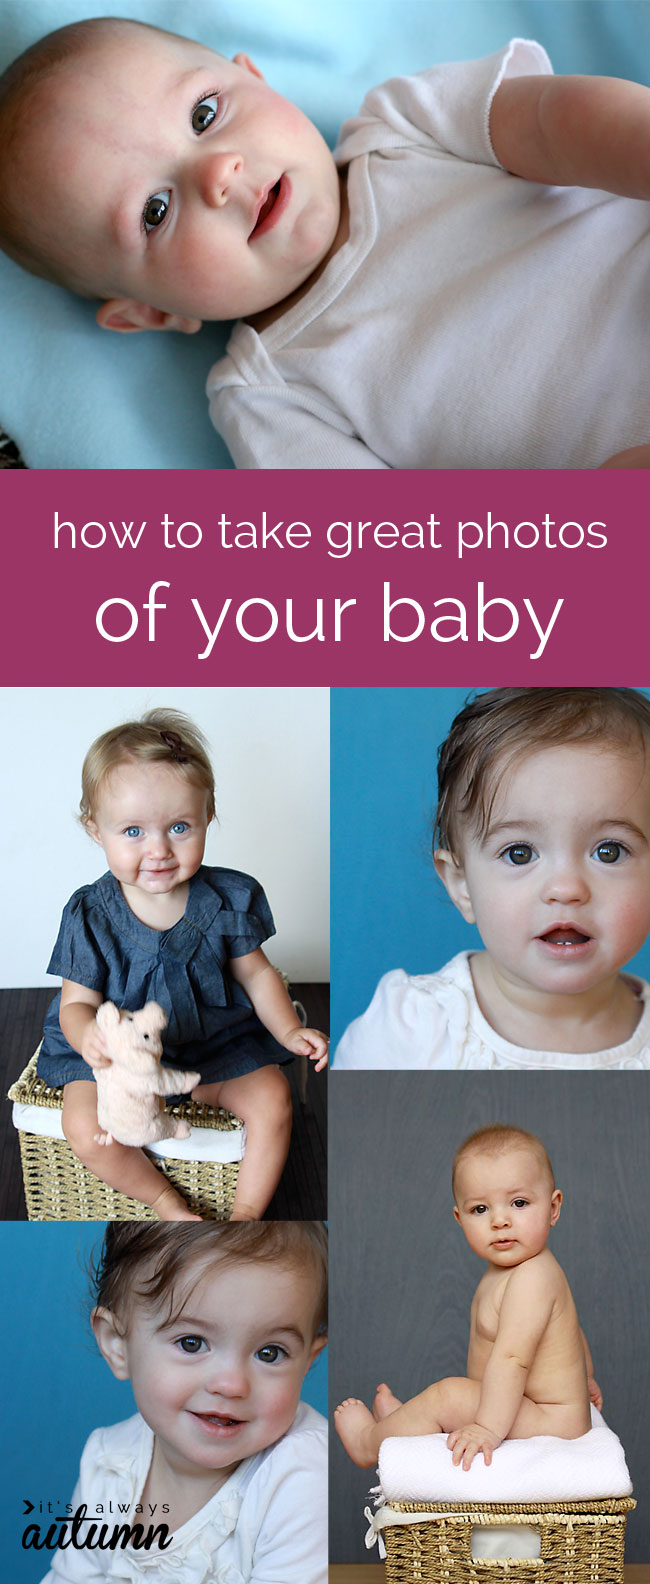 collage of baby photos - how to take great photos of your baby